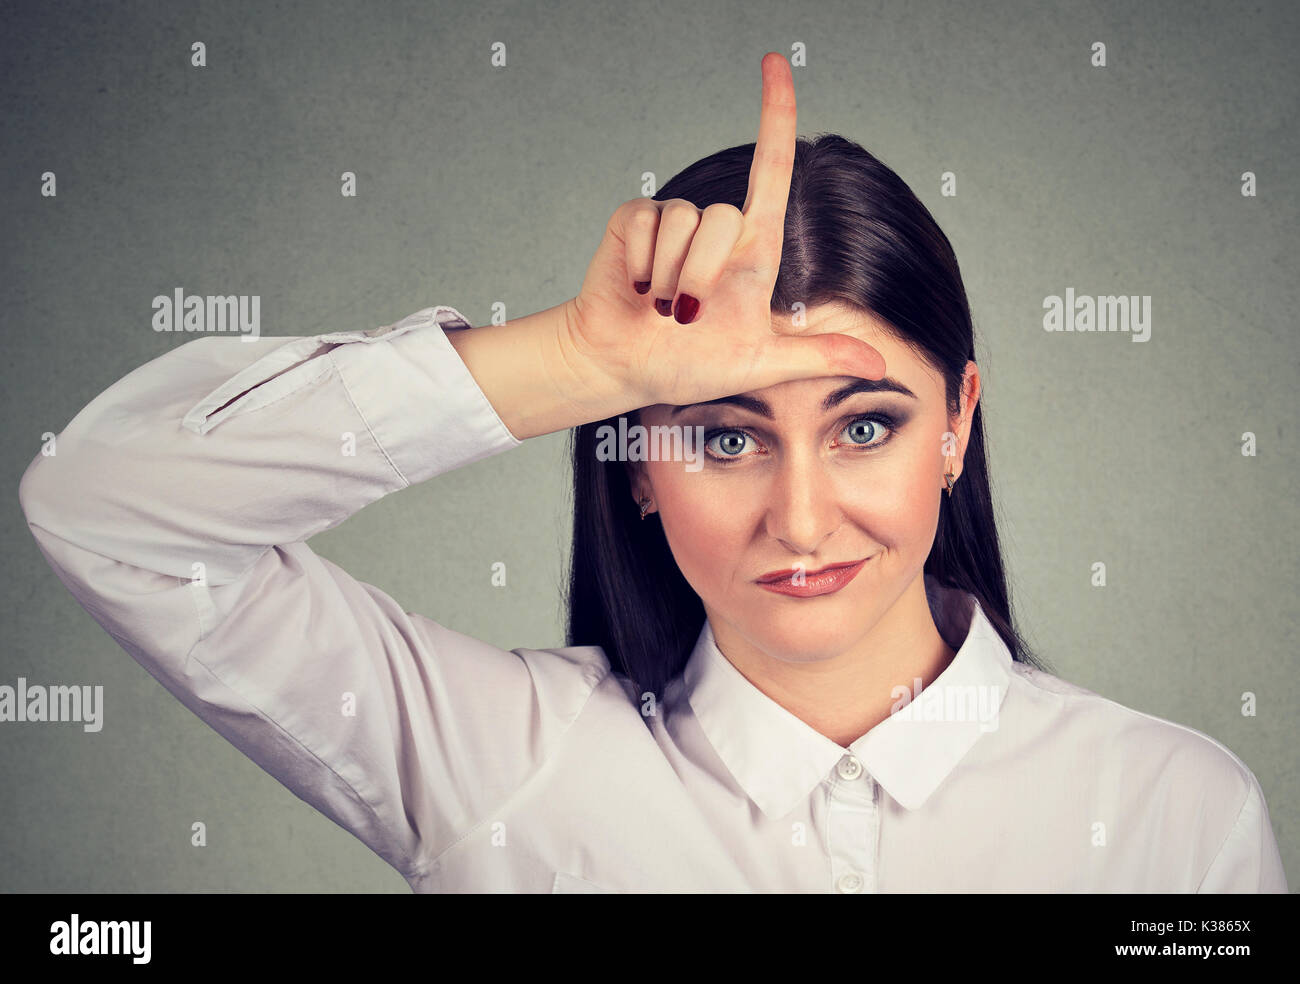 Angry woman showing loser sign looking at camera - Stock Image